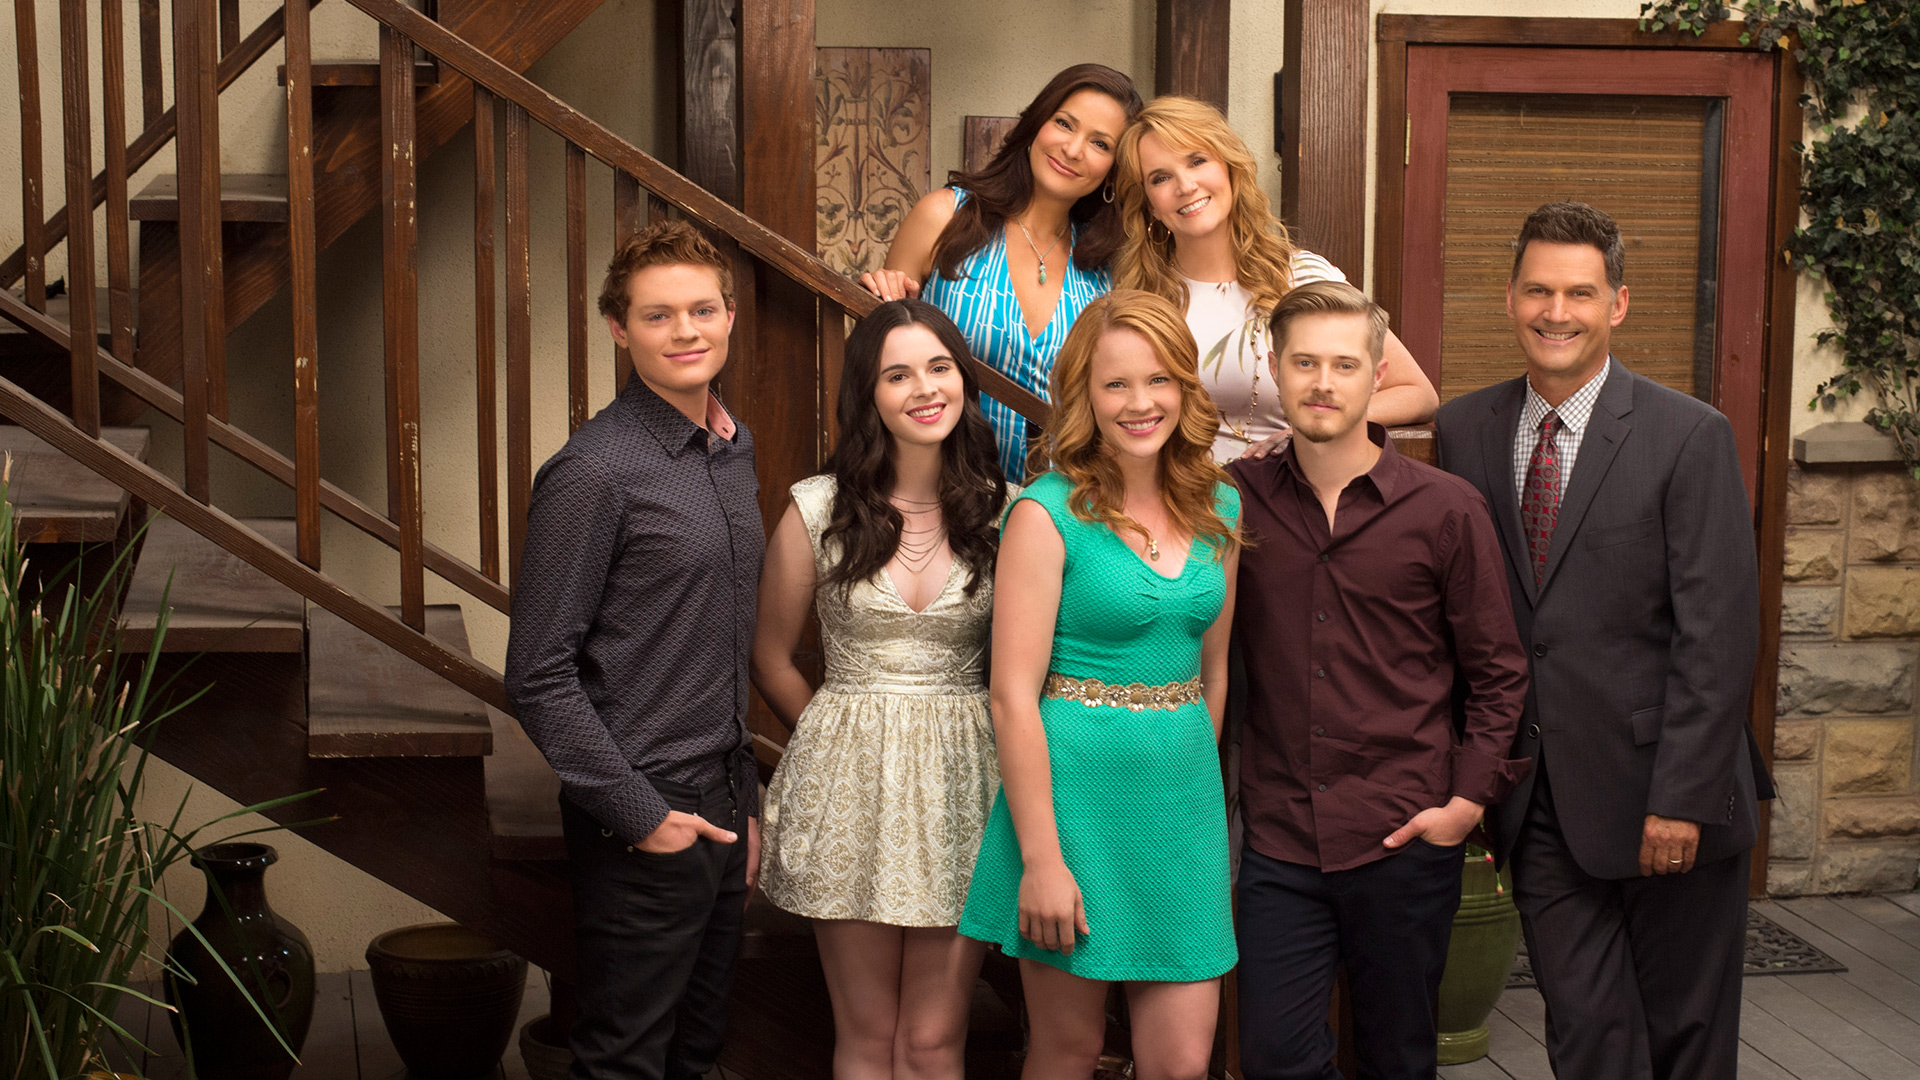 "SWITCHED AT BIRTH – ABC Family's ""Switched at Birth"" stars Sean Berdy as Emmett Bledsoe, Vanessa Marano as Bay Kennish, Constance Marie as Regina Vasquez, Katie Leclerc as Daphne Vasquez, Lea Thompson as Kathryn Kennish, Lucas Grabeel as Toby Kennish and D.W. Moffett as John Kennish. (ABC FAMILY/Todd Wawrychuk)"